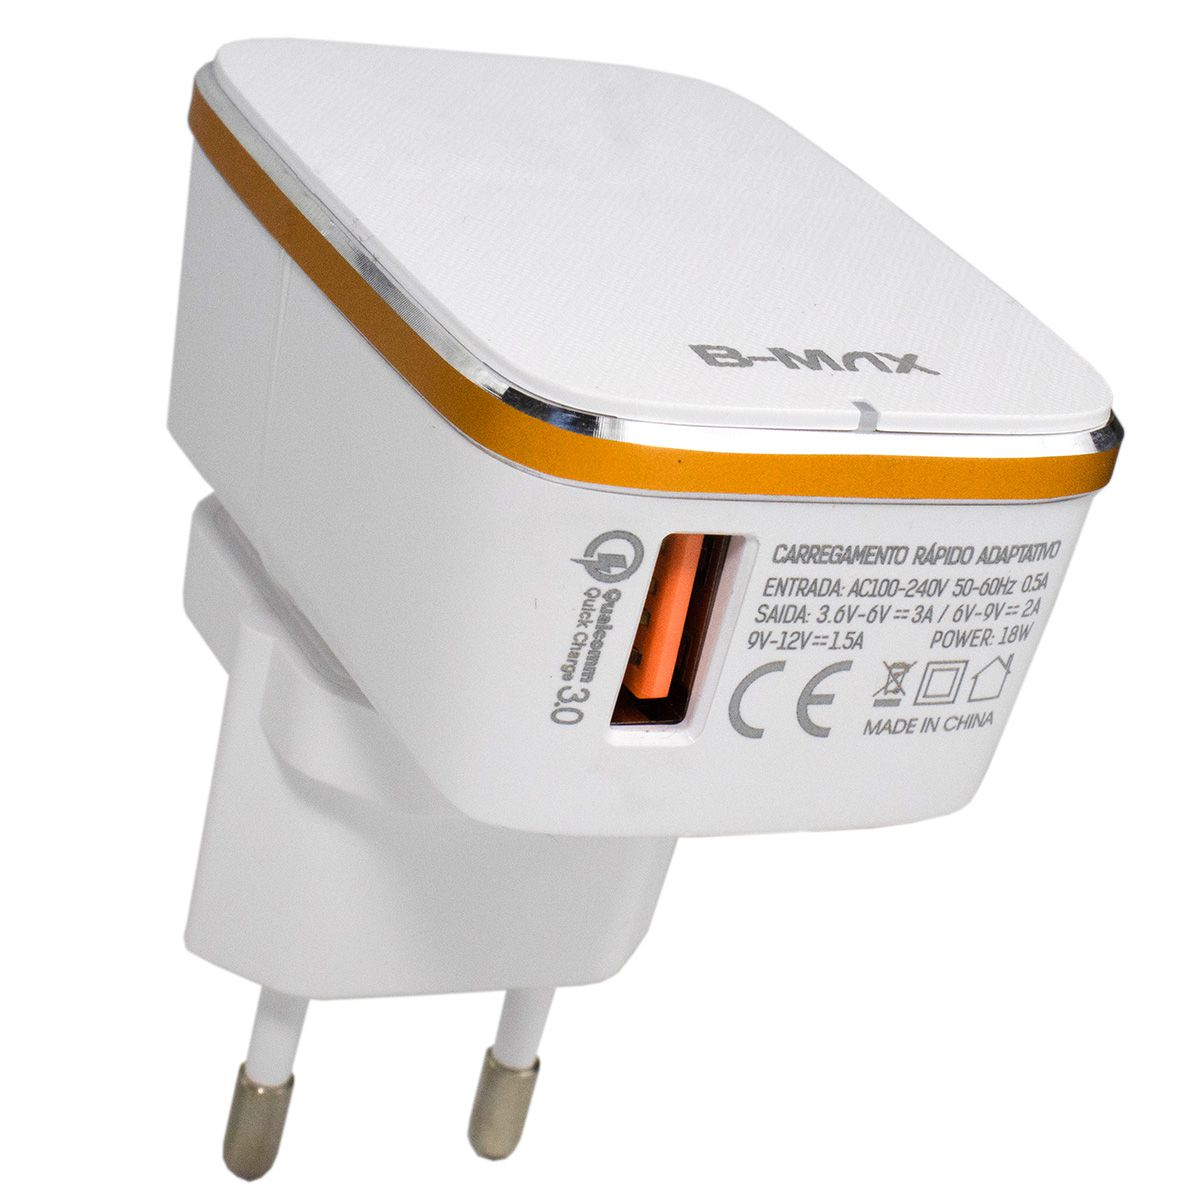 Carregador Turbo Quick Charge 3.0 18w para Iphone Lightning B-Max BM8608